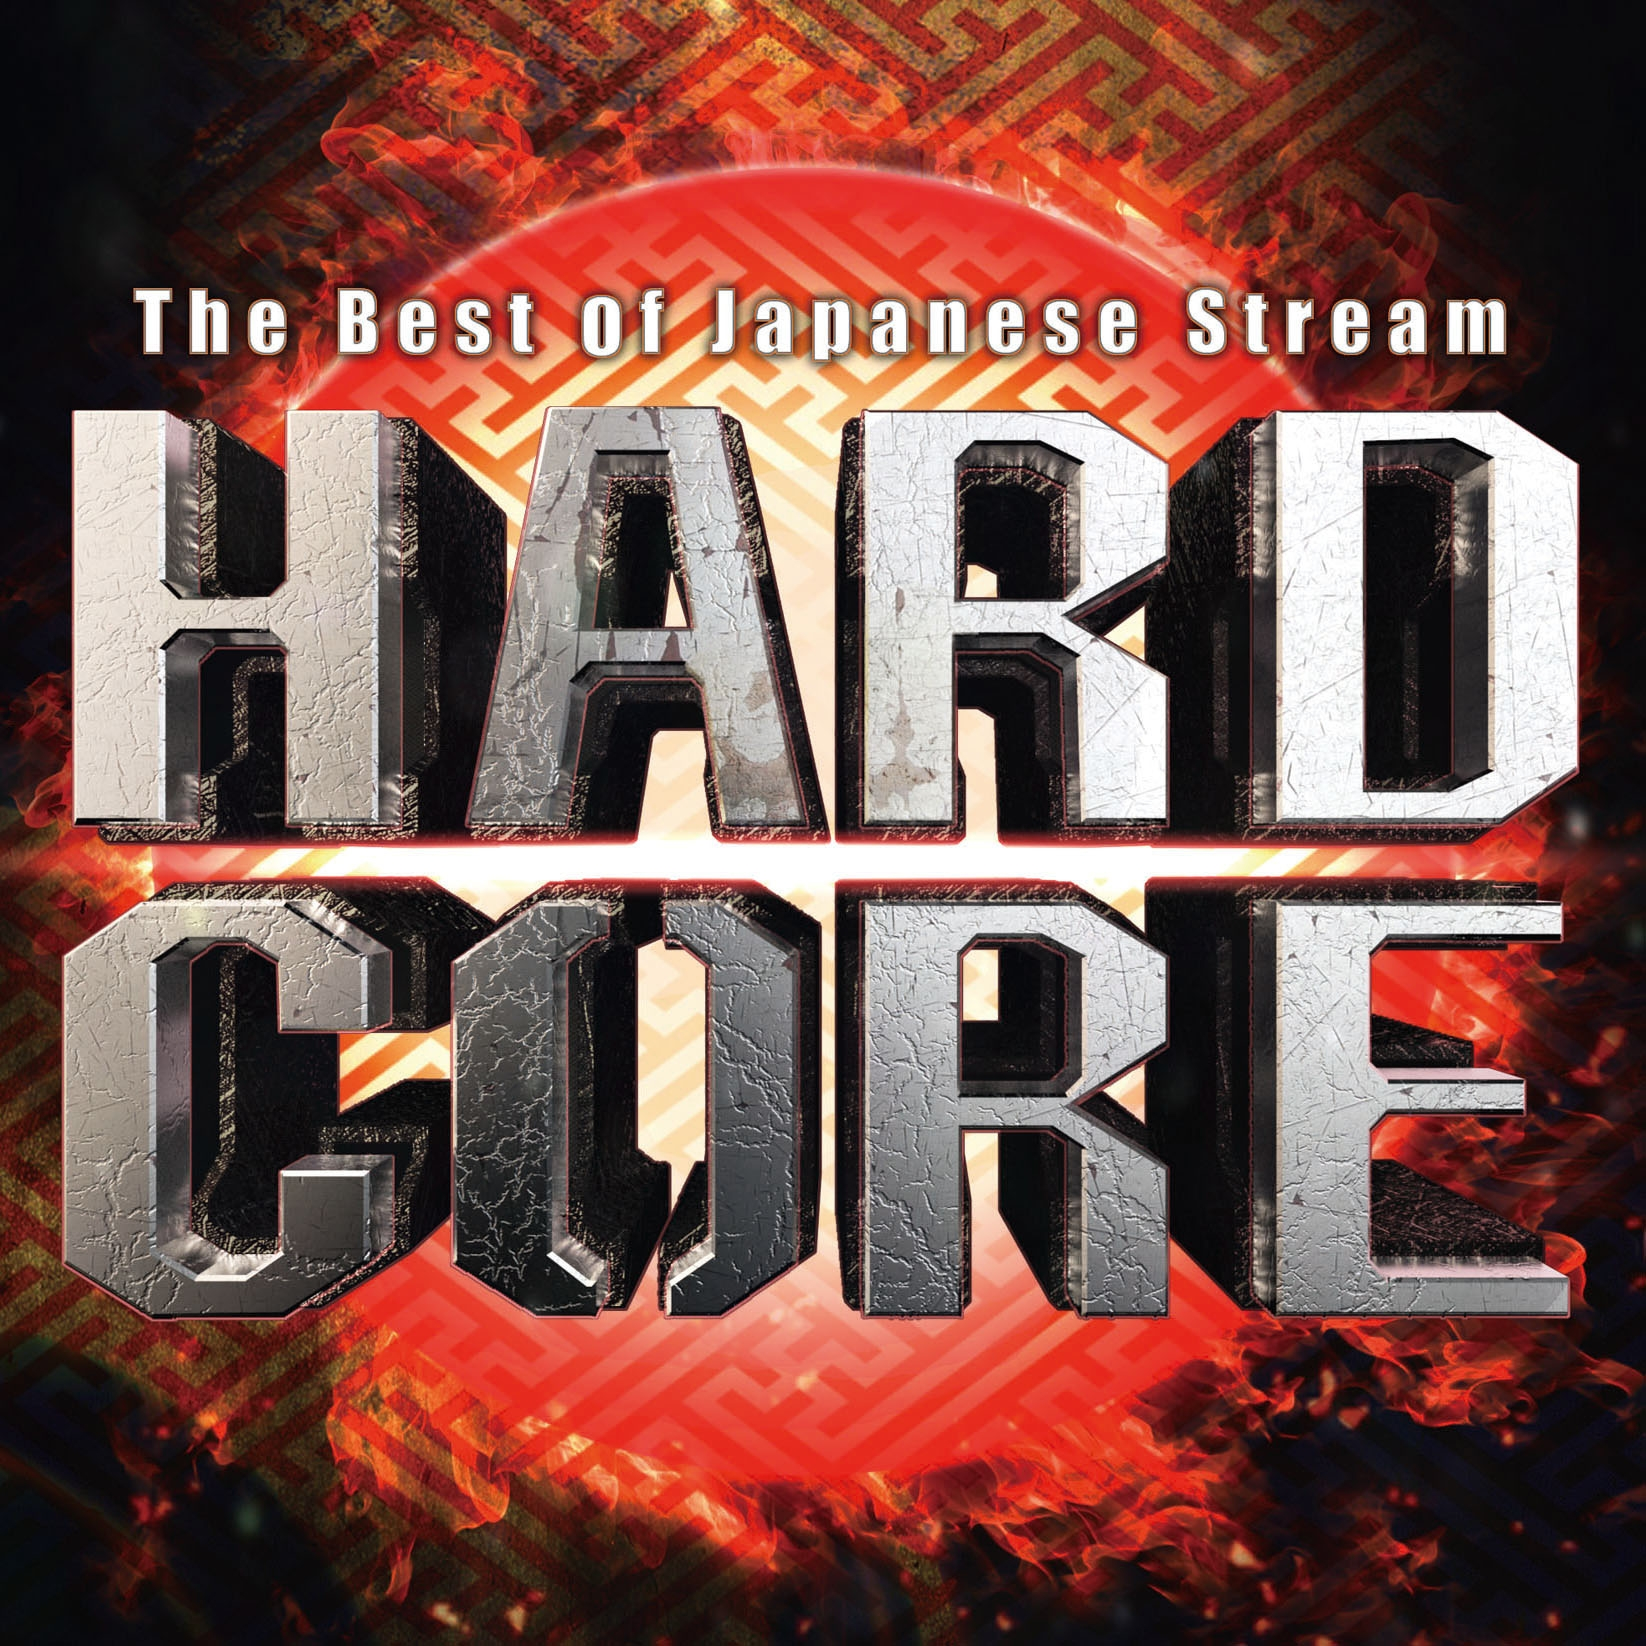 The Best of Japanese Stream Hardcore - The Best of